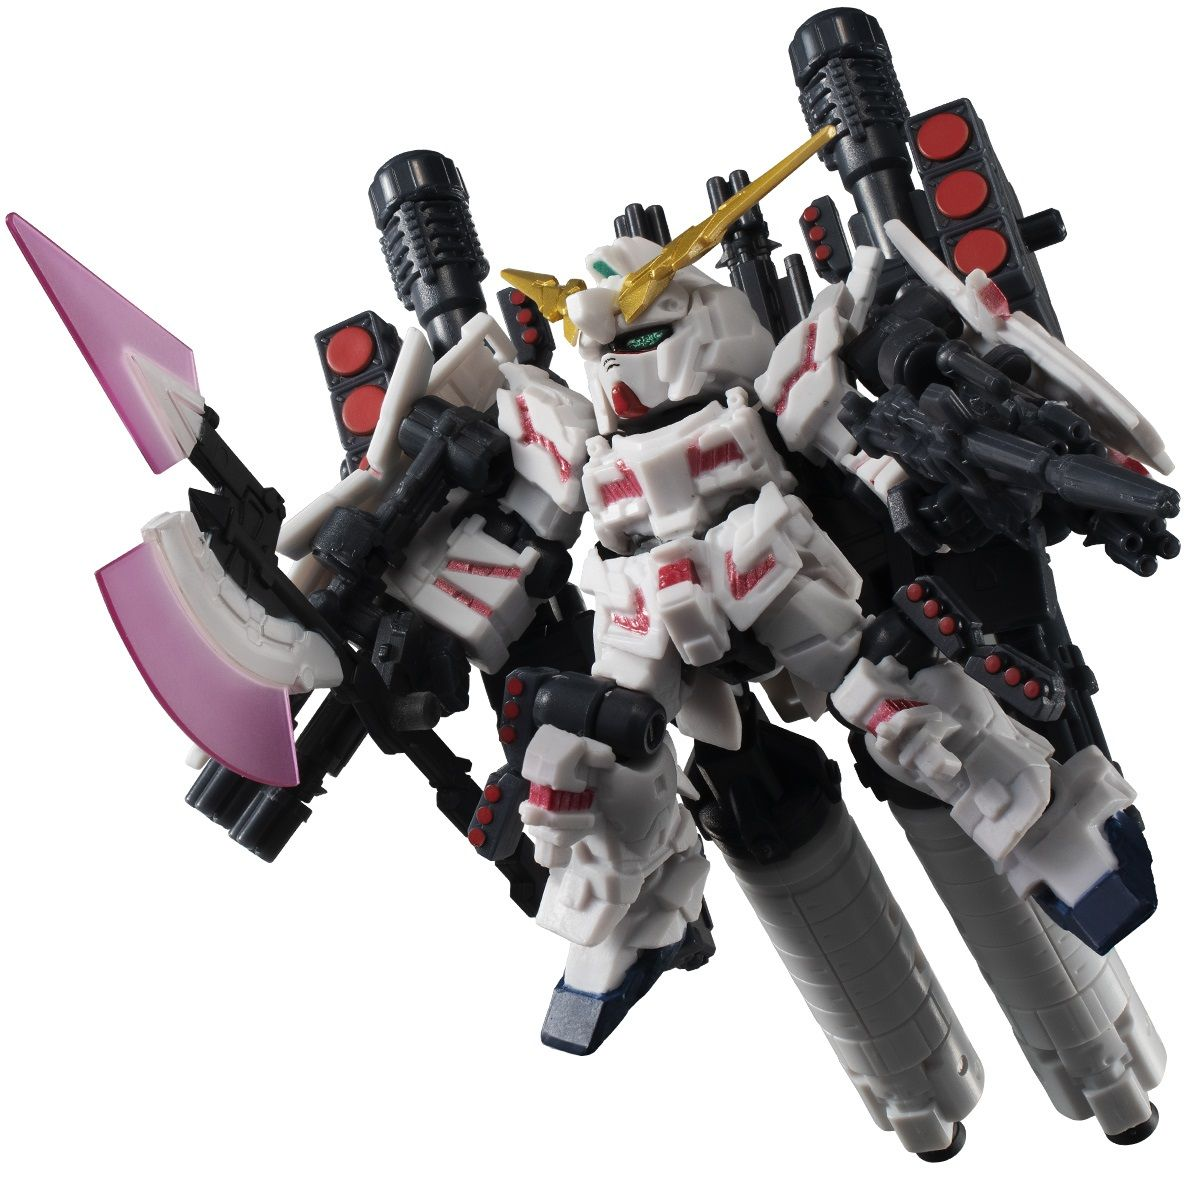 MSG MOBILE SUIT ENSEMBLE EX13 Full Armor Unicorn REDver. [End of November]